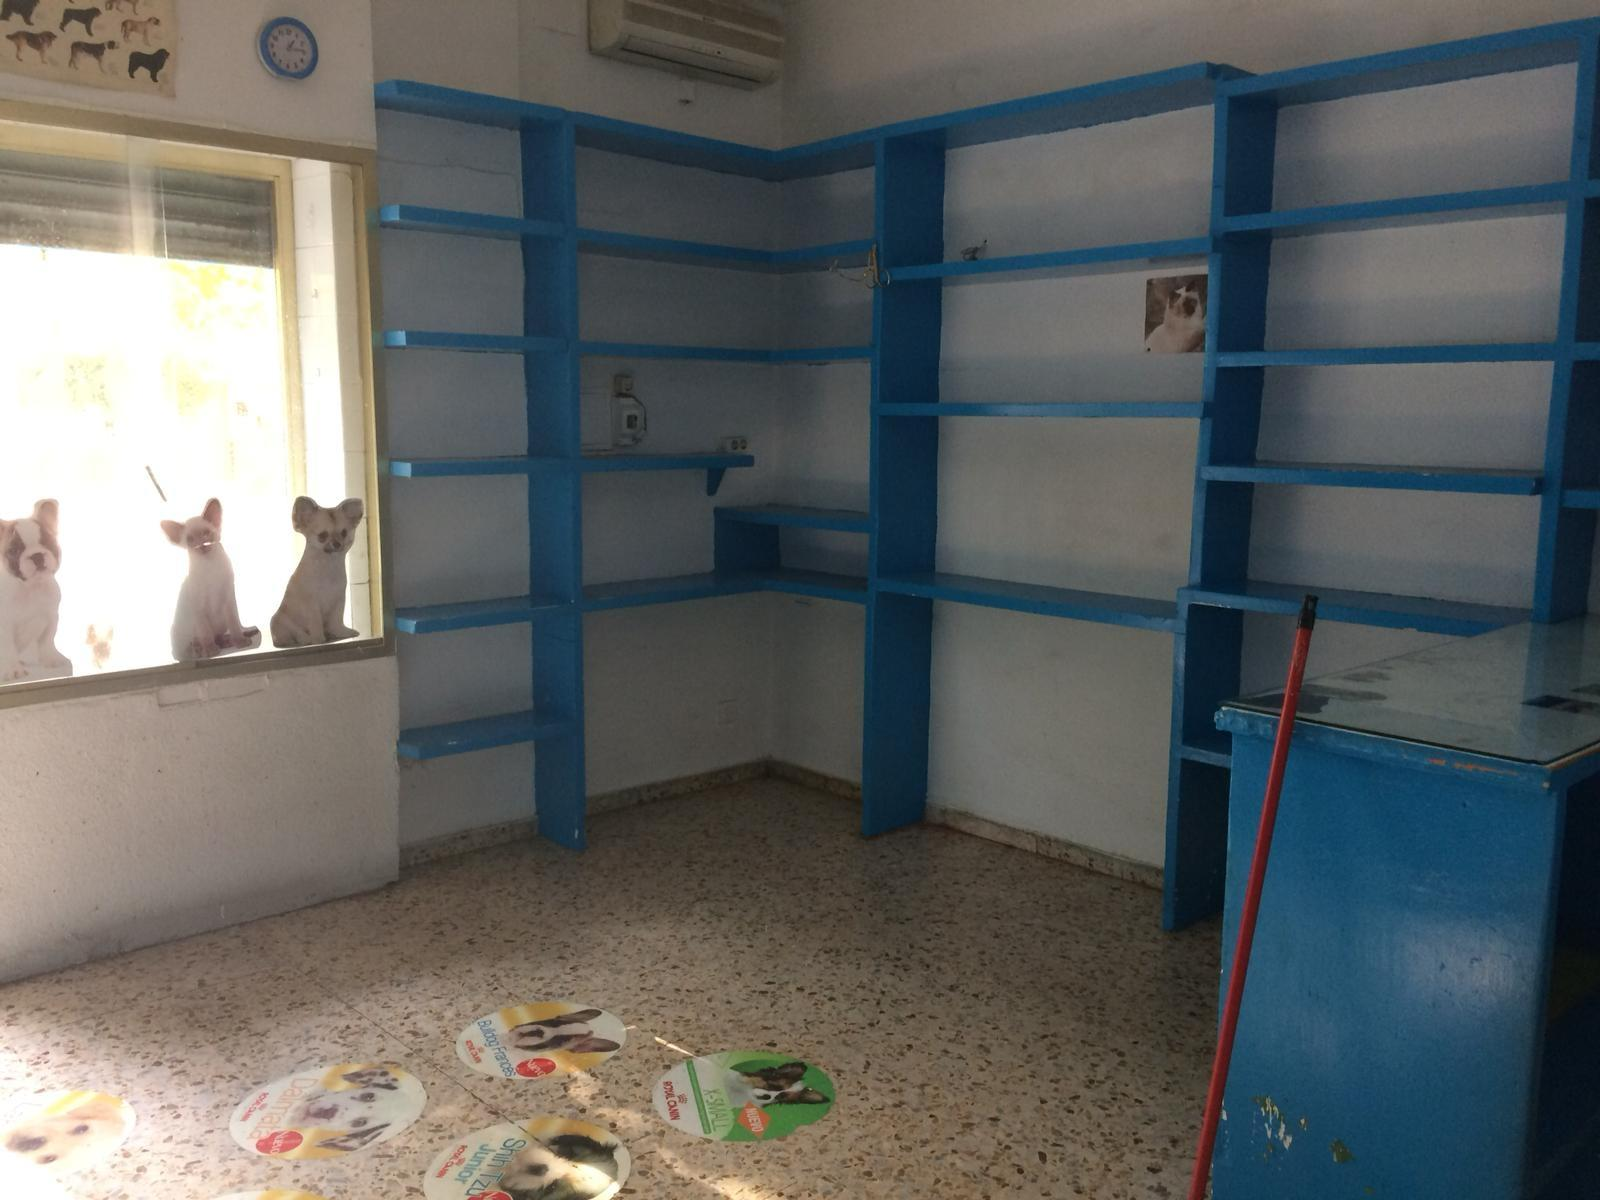 Commercial Premises for rent in Zaidín (Granada), 280 €/month